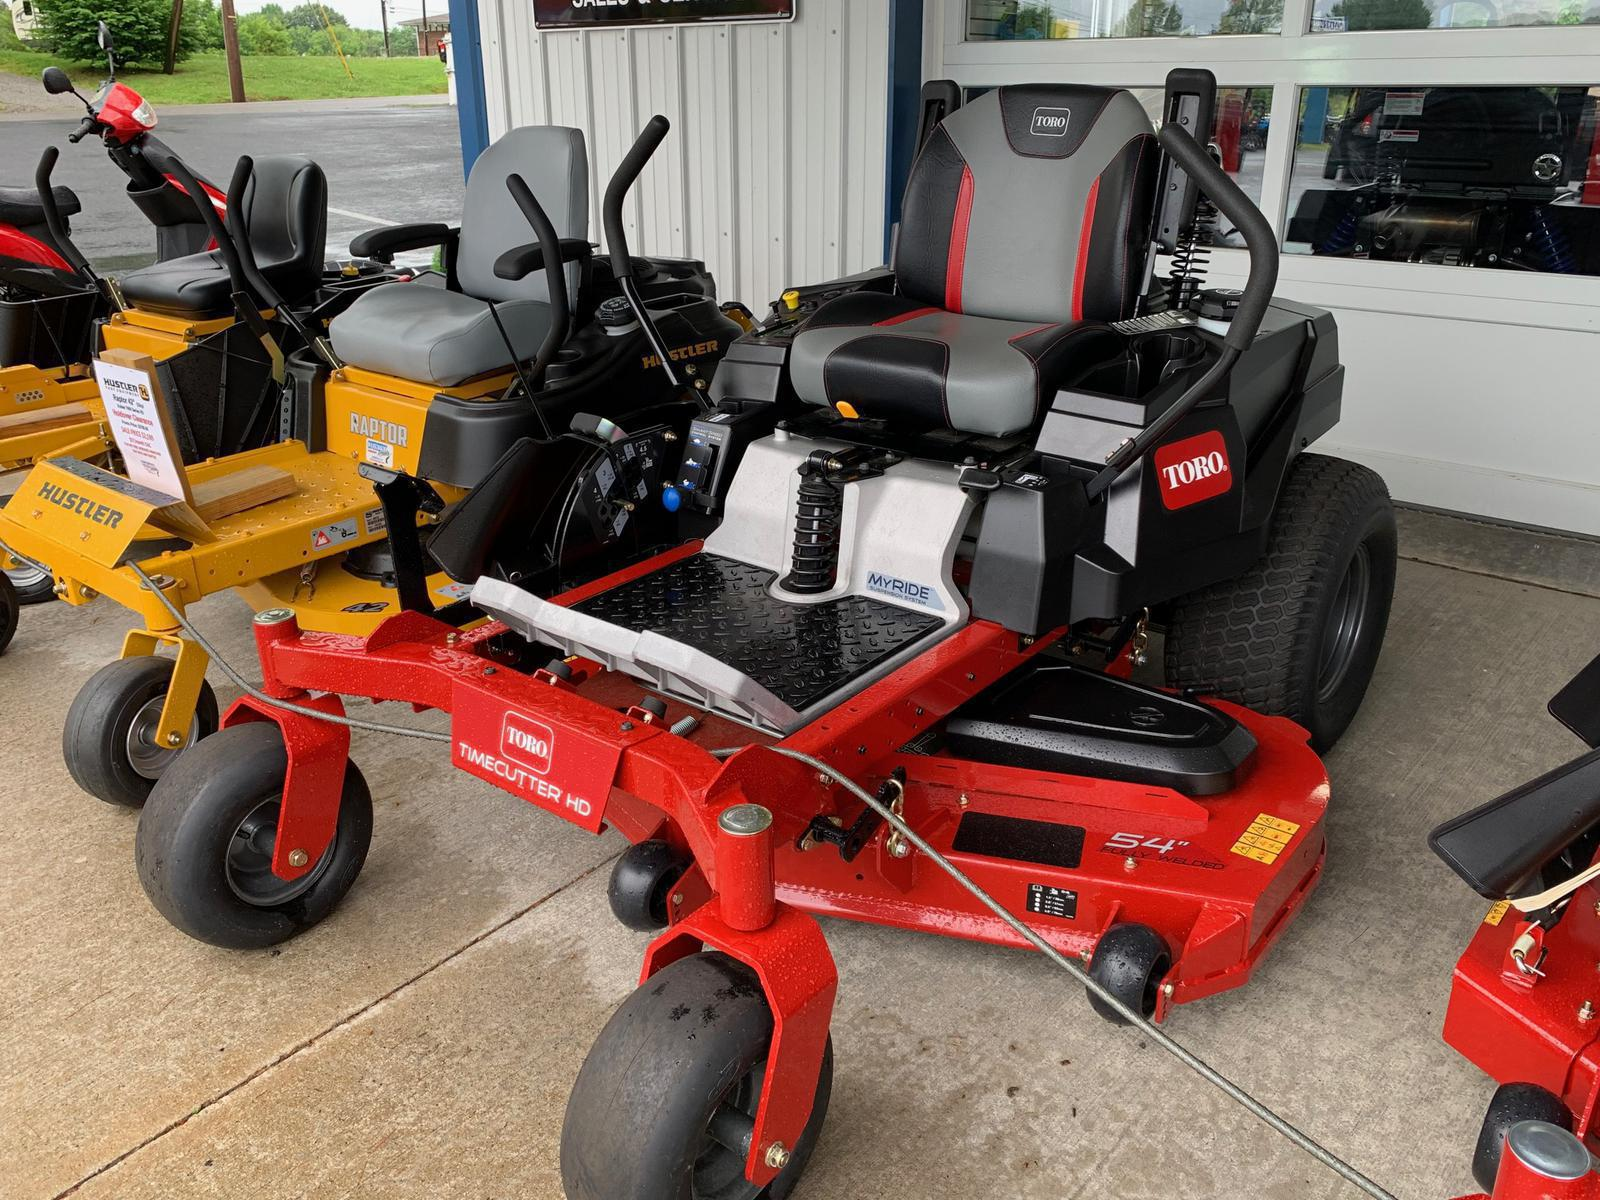 Inventory from Toro Country Roads Powersports Greenville, KY (270